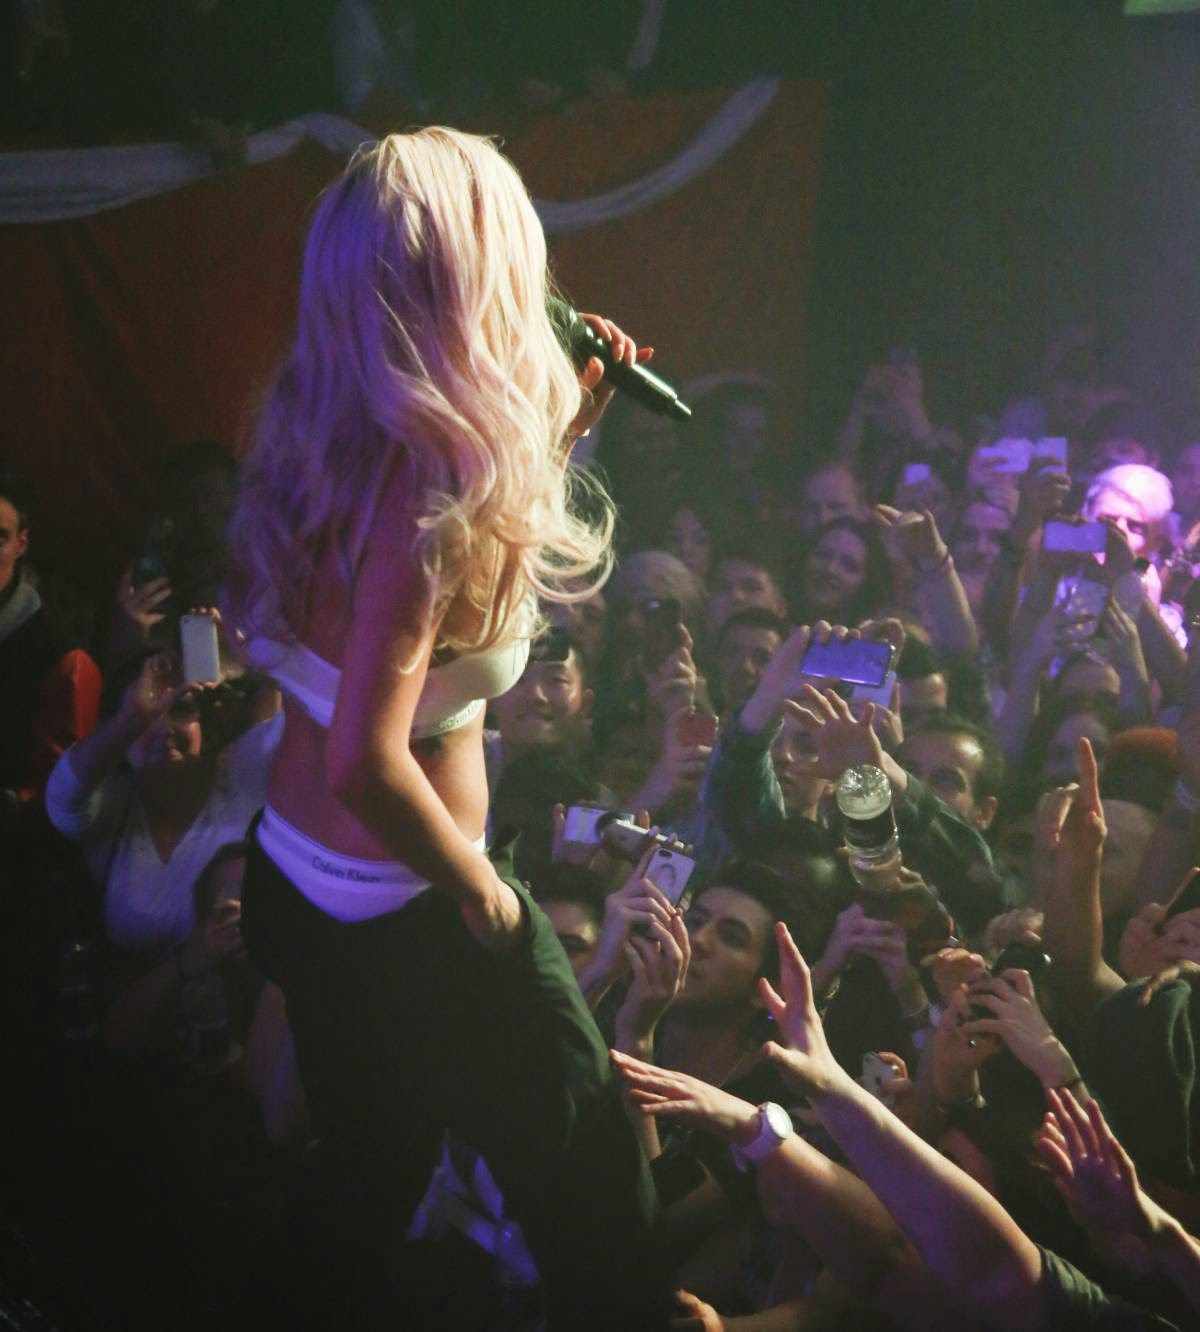 Rita Ora - Hottest Performence Photos at G-A-Y in London